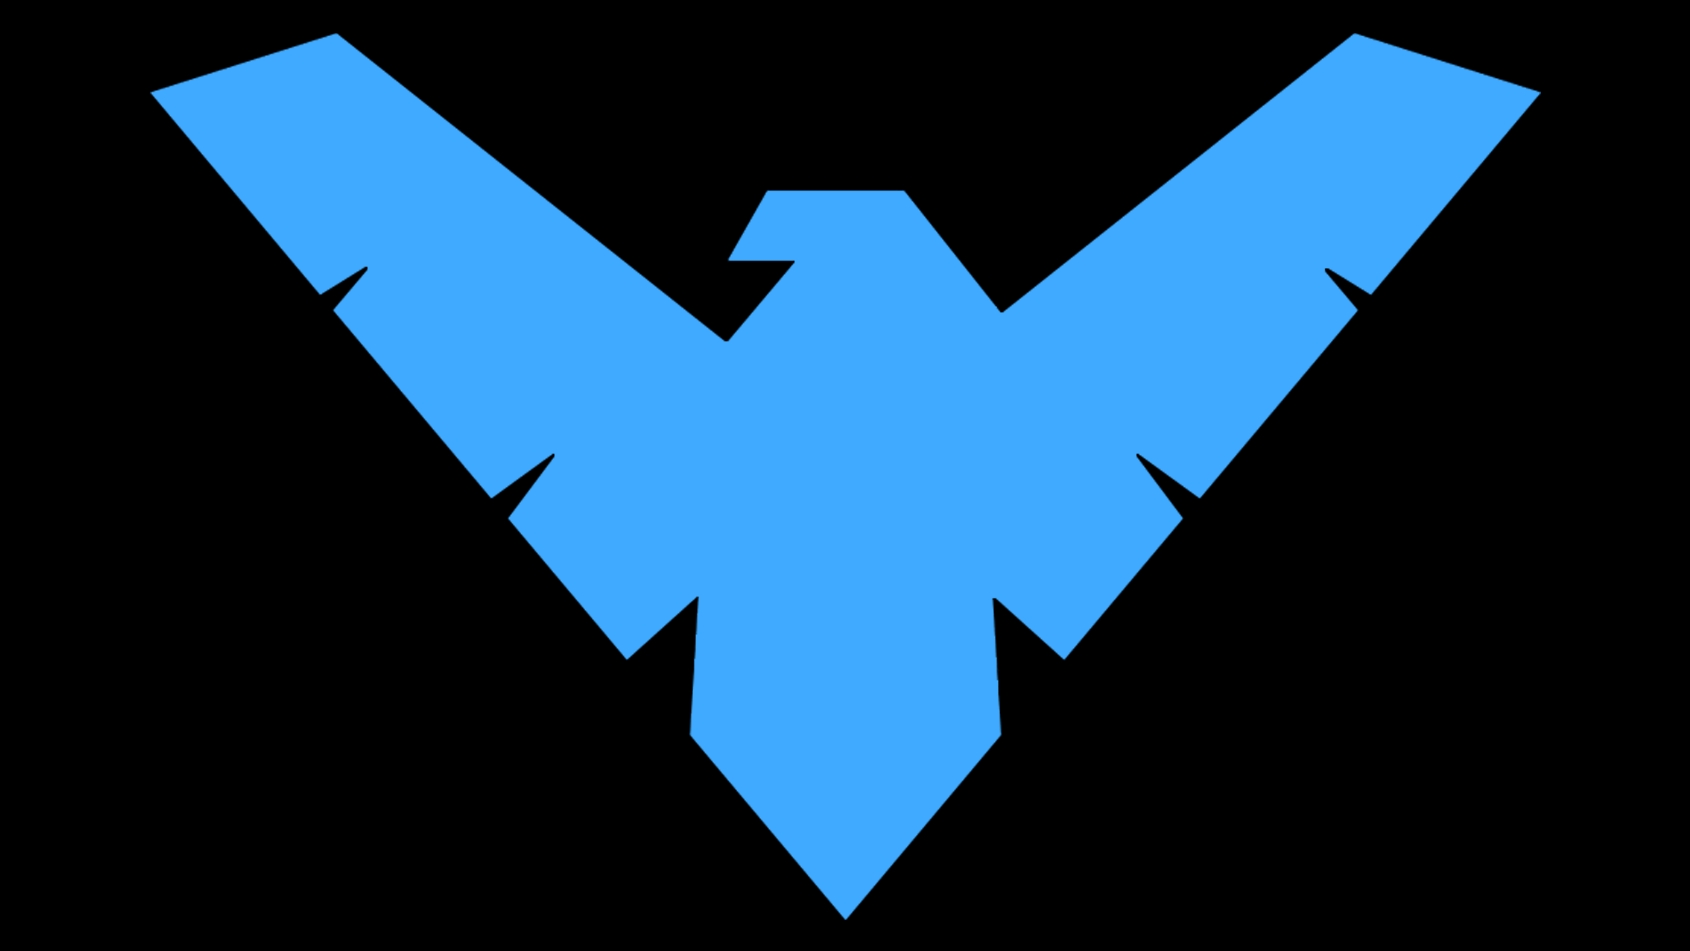 Nightwing Wallpaper And Background Image | 1690x951 | ID ...